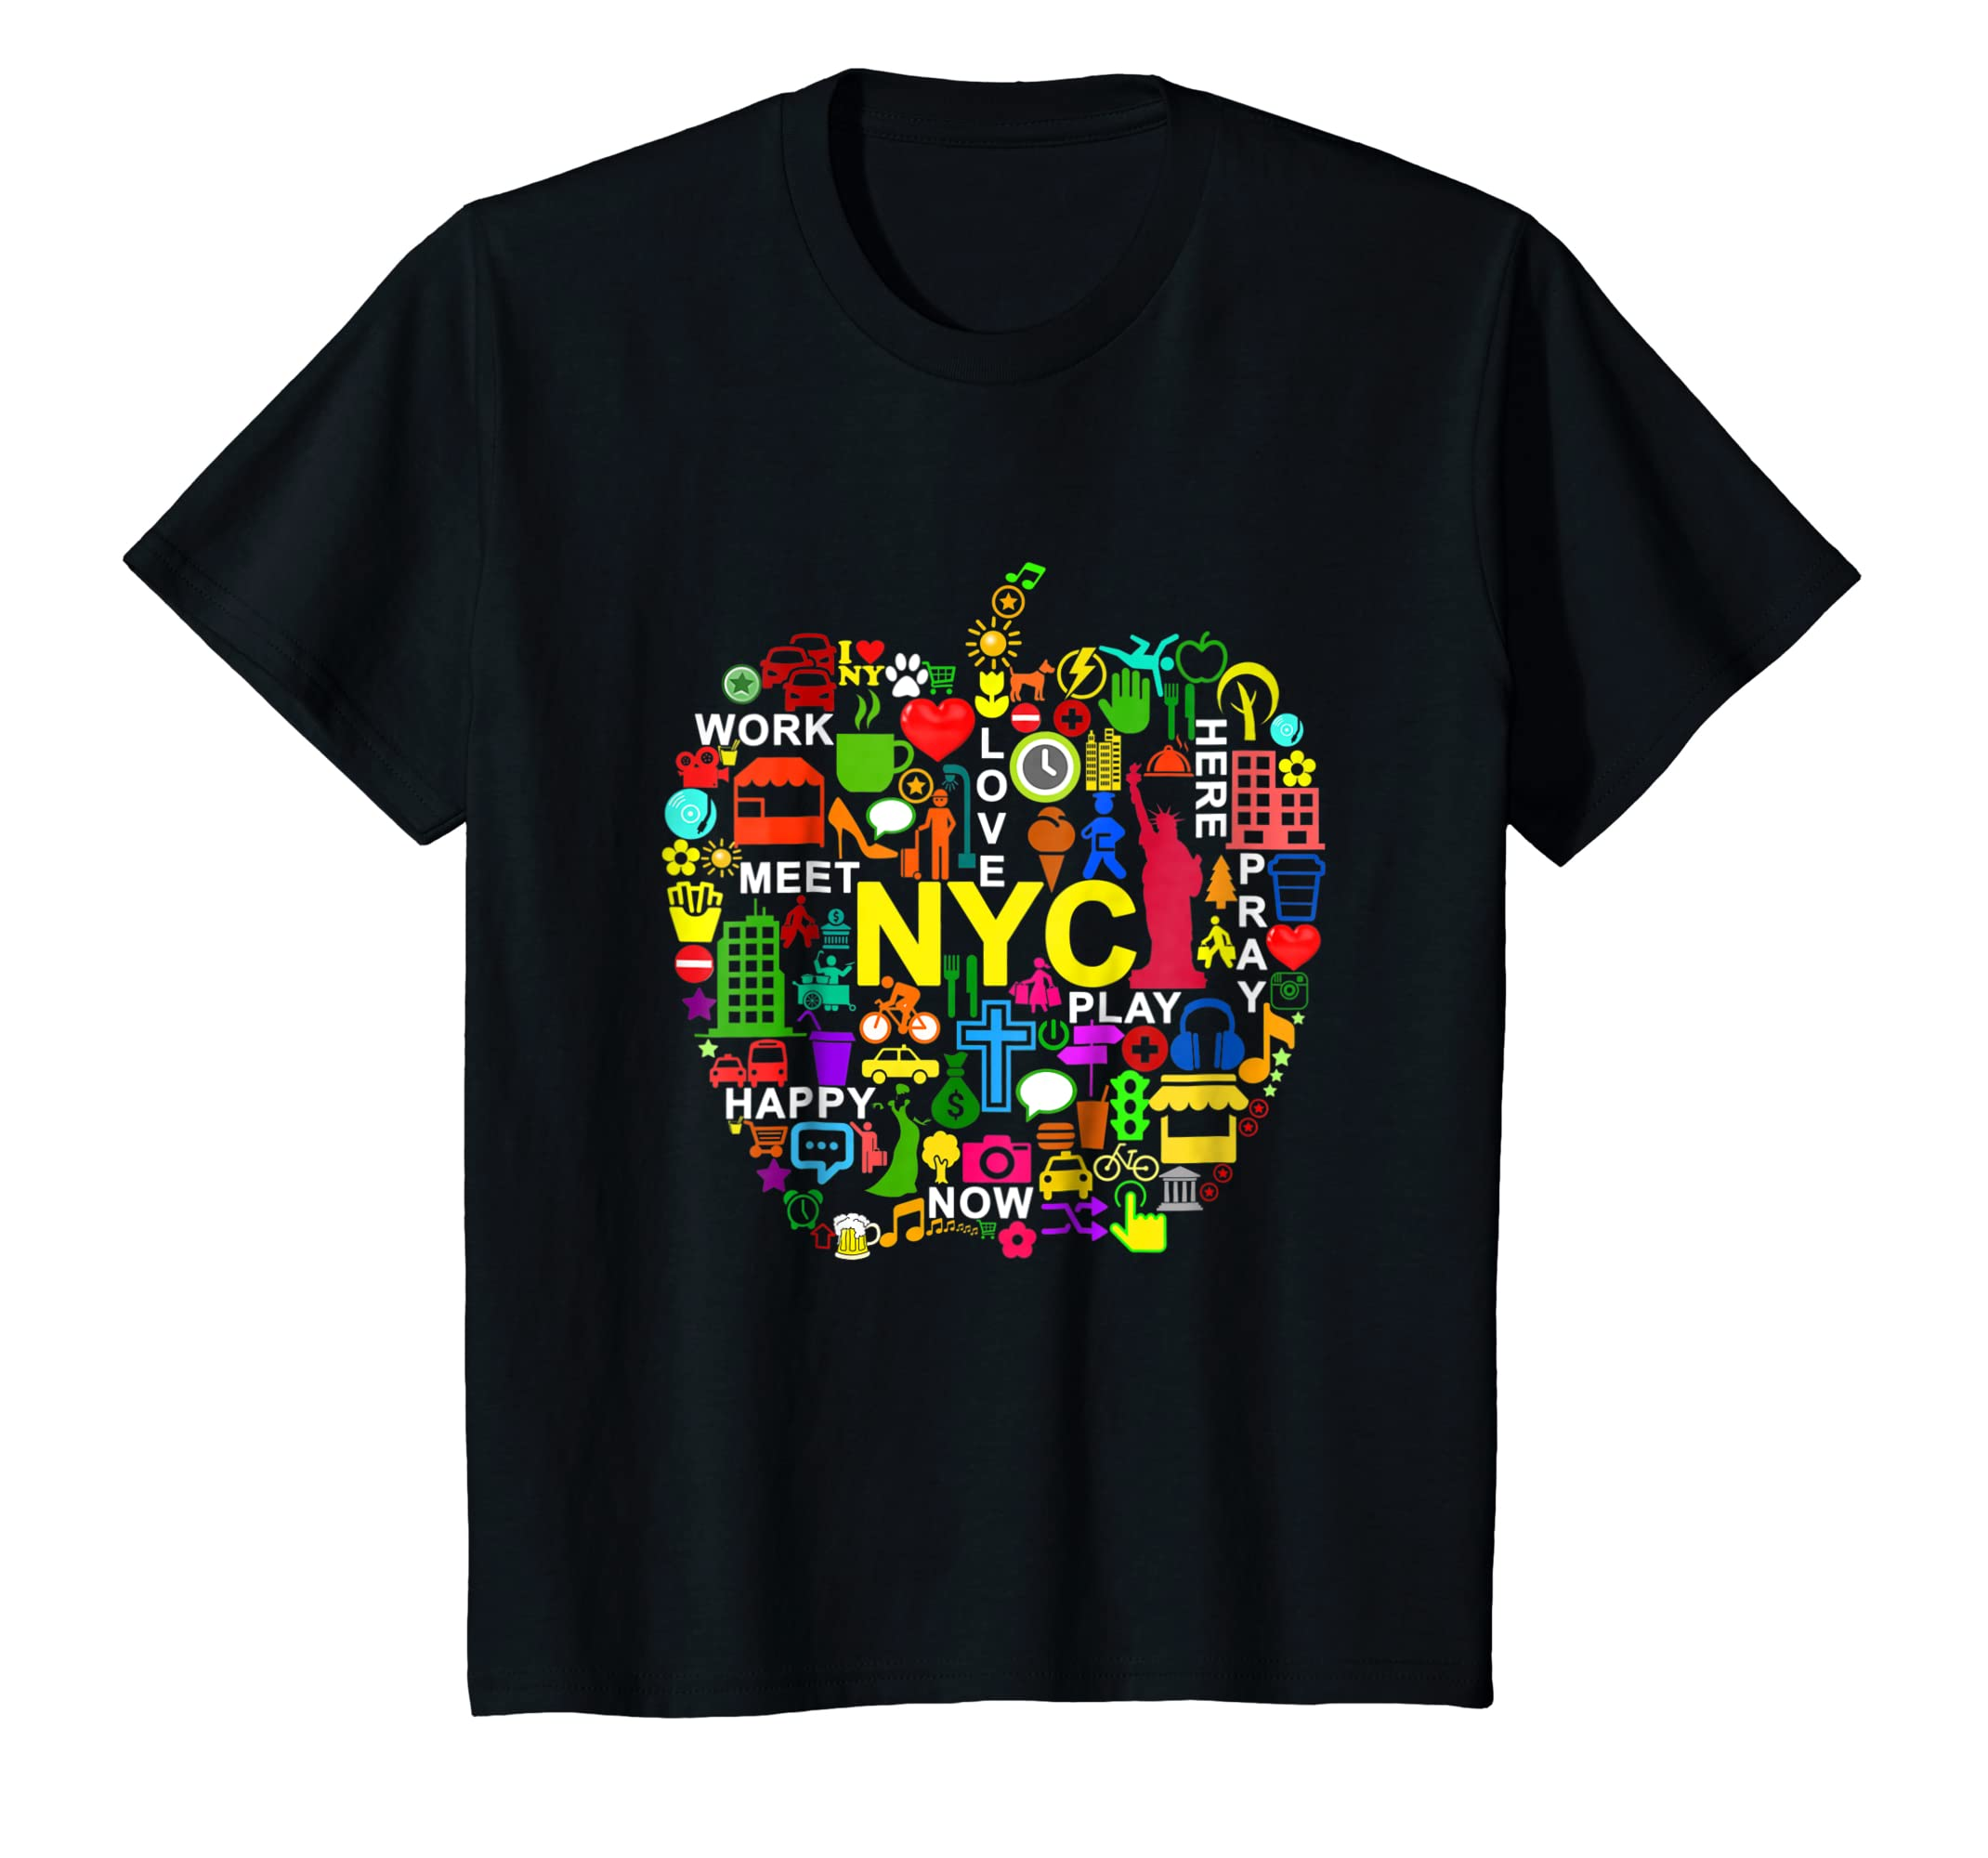 Amazon.com  I LOVE NYC T-Shirts NEW YORK CITY BIG APPLE  Clothing f2fd9c0b85e